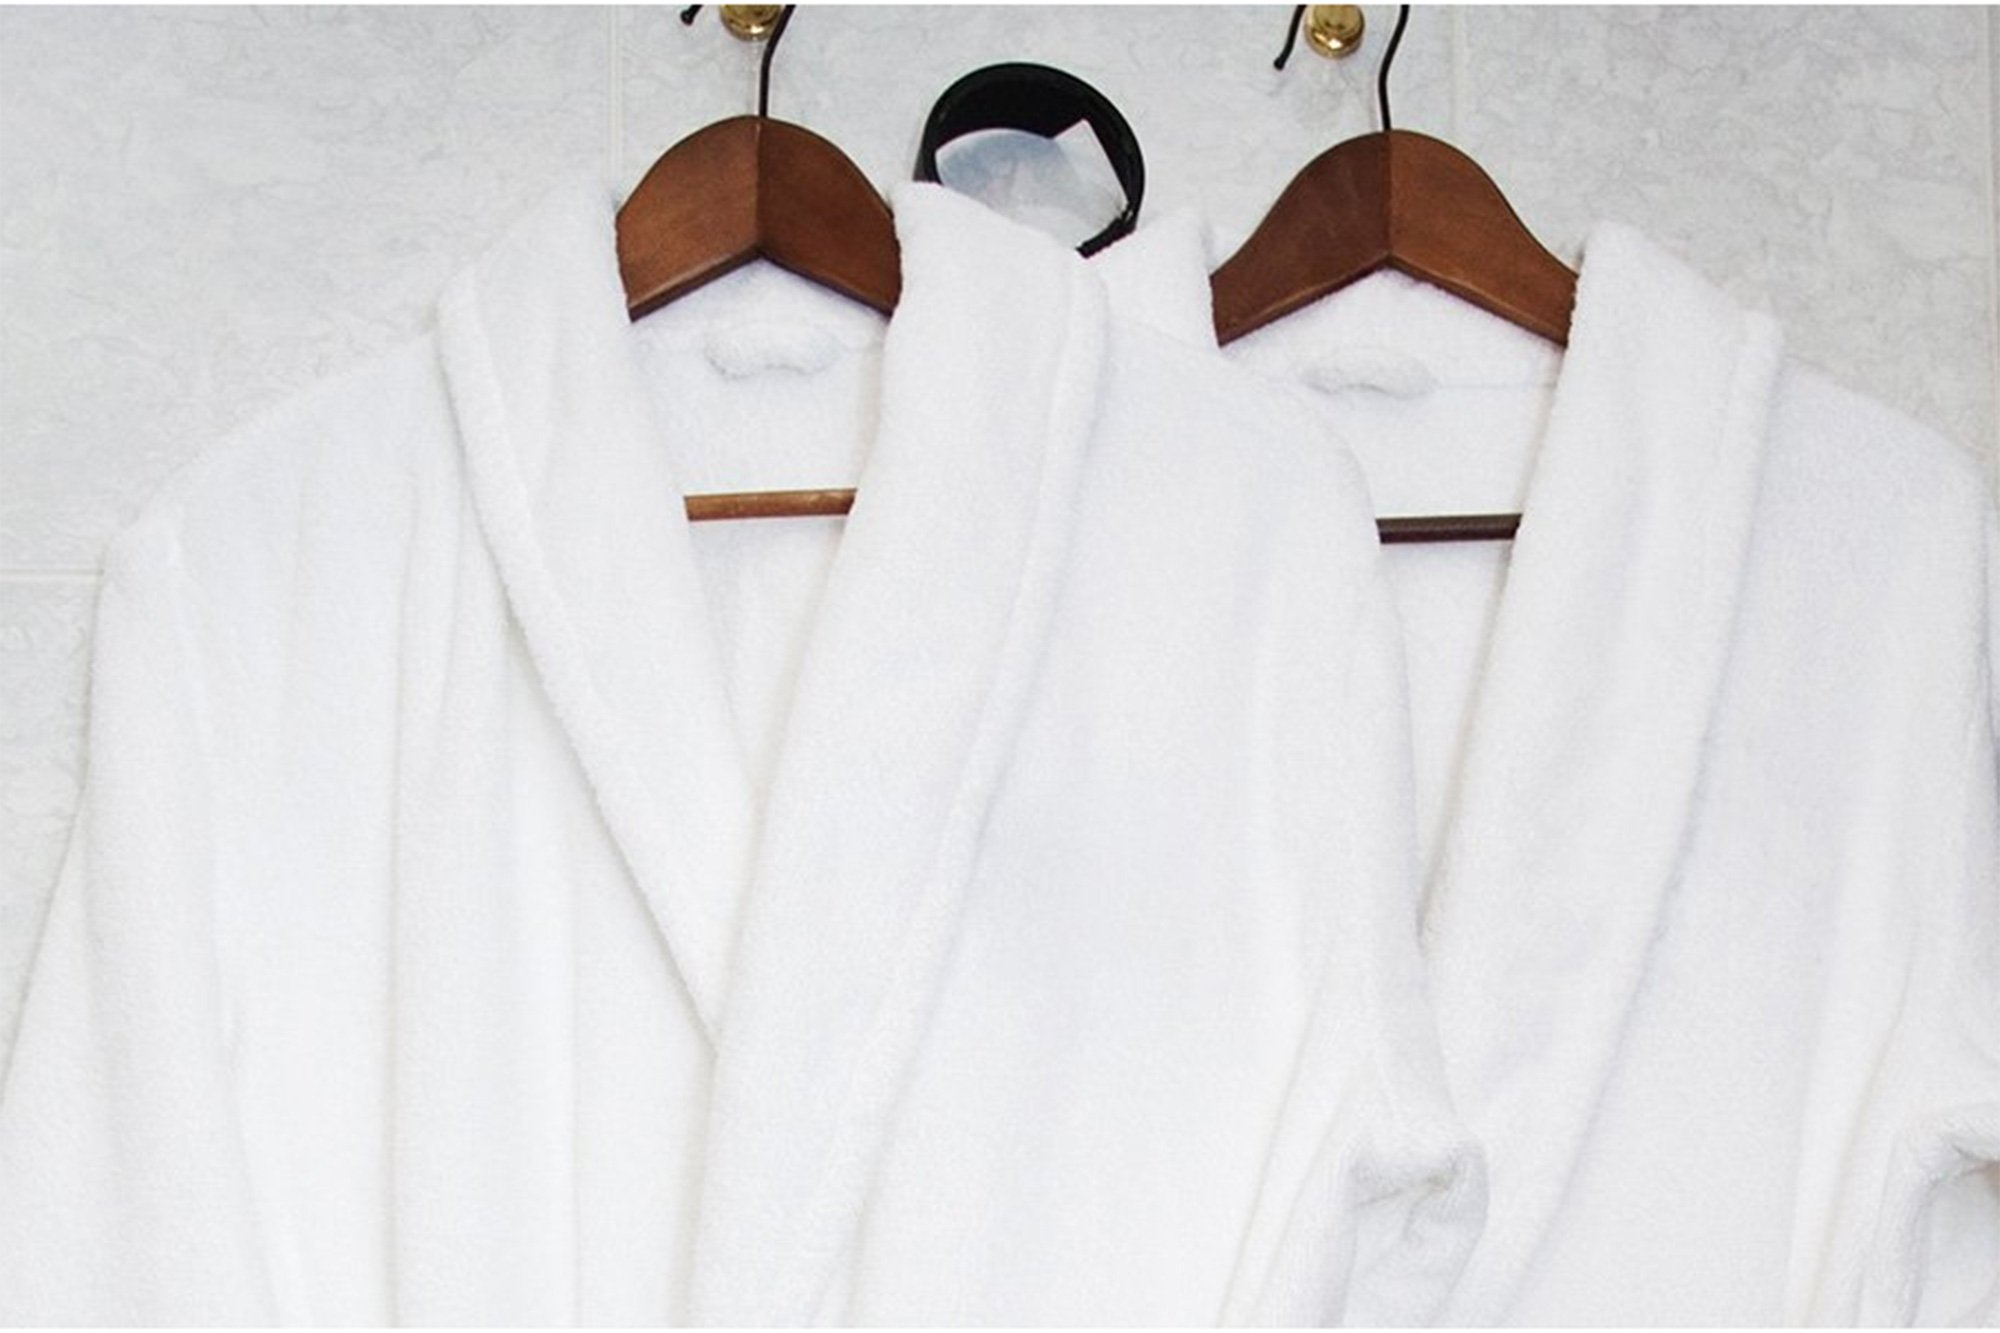 white robe hanging on bathroom door